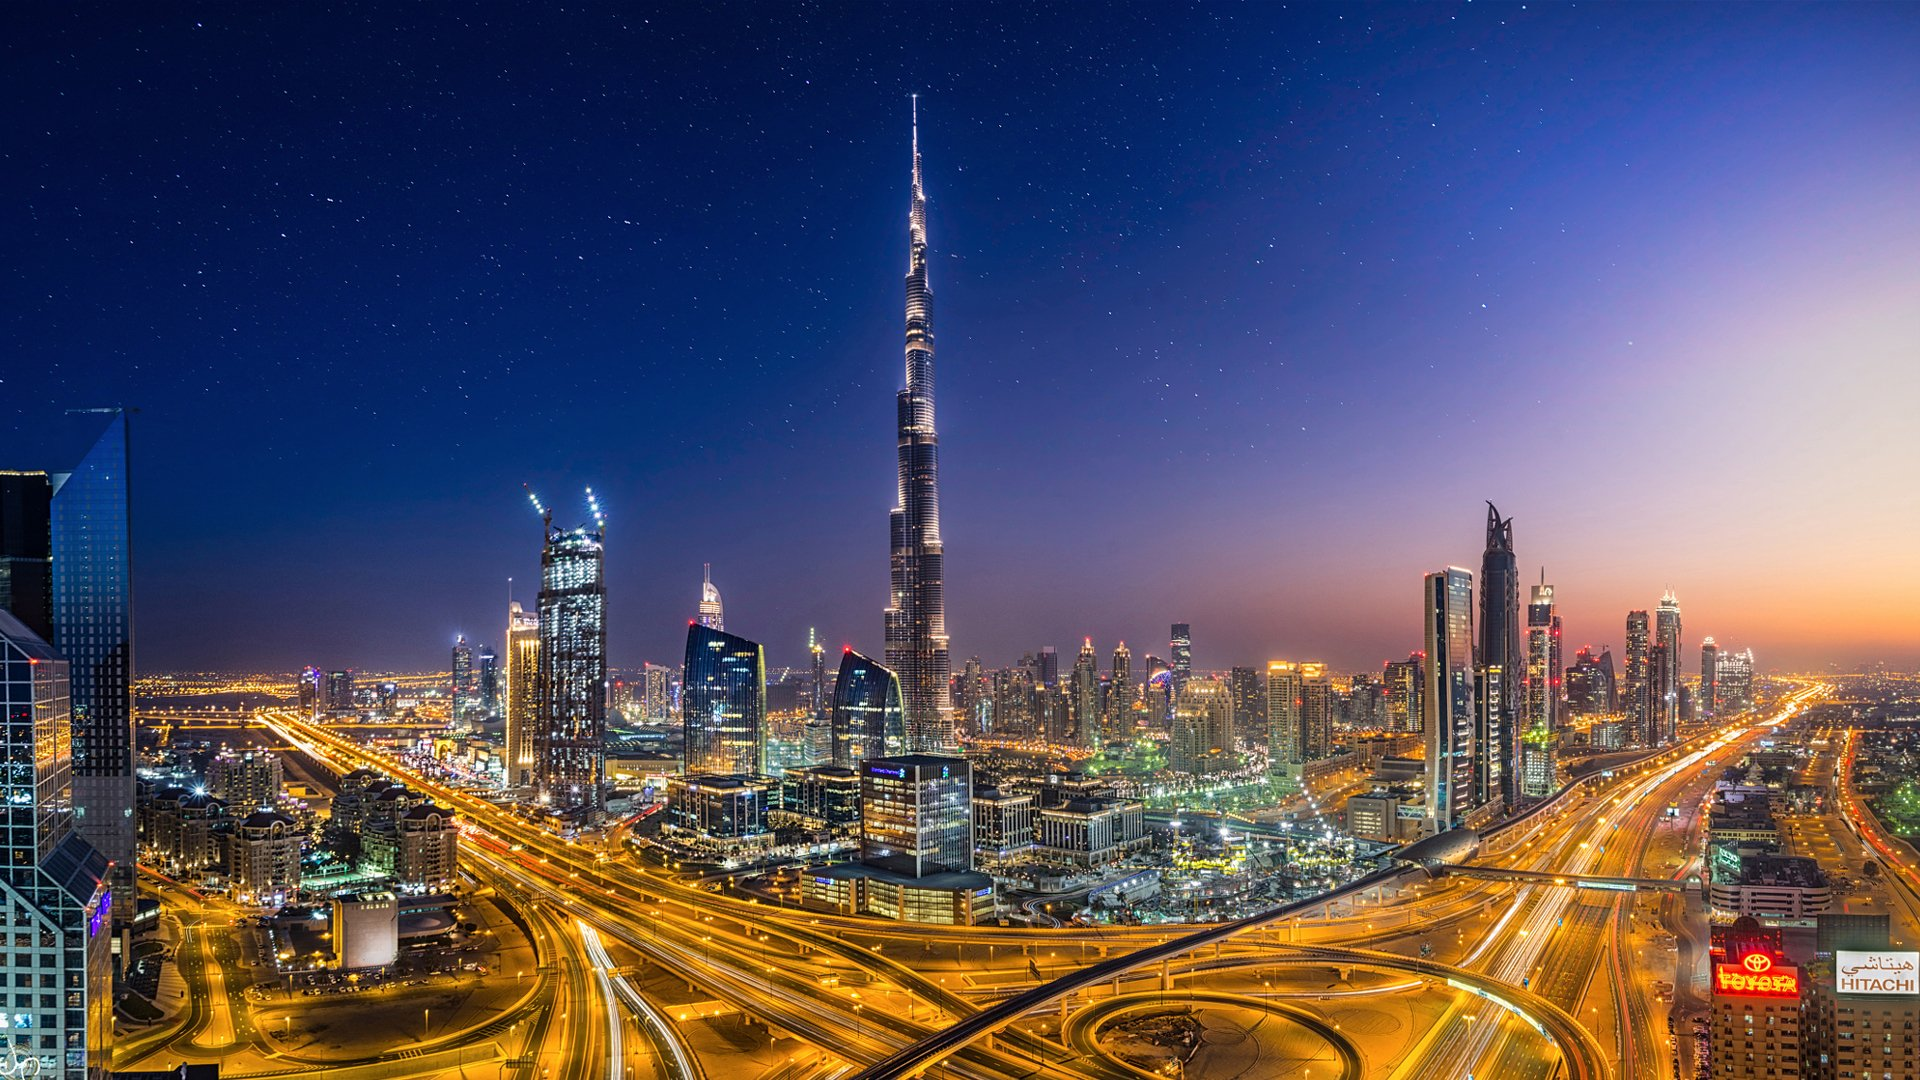 dubai full hd wallpaper and background image | 1920x1080 | id:599397